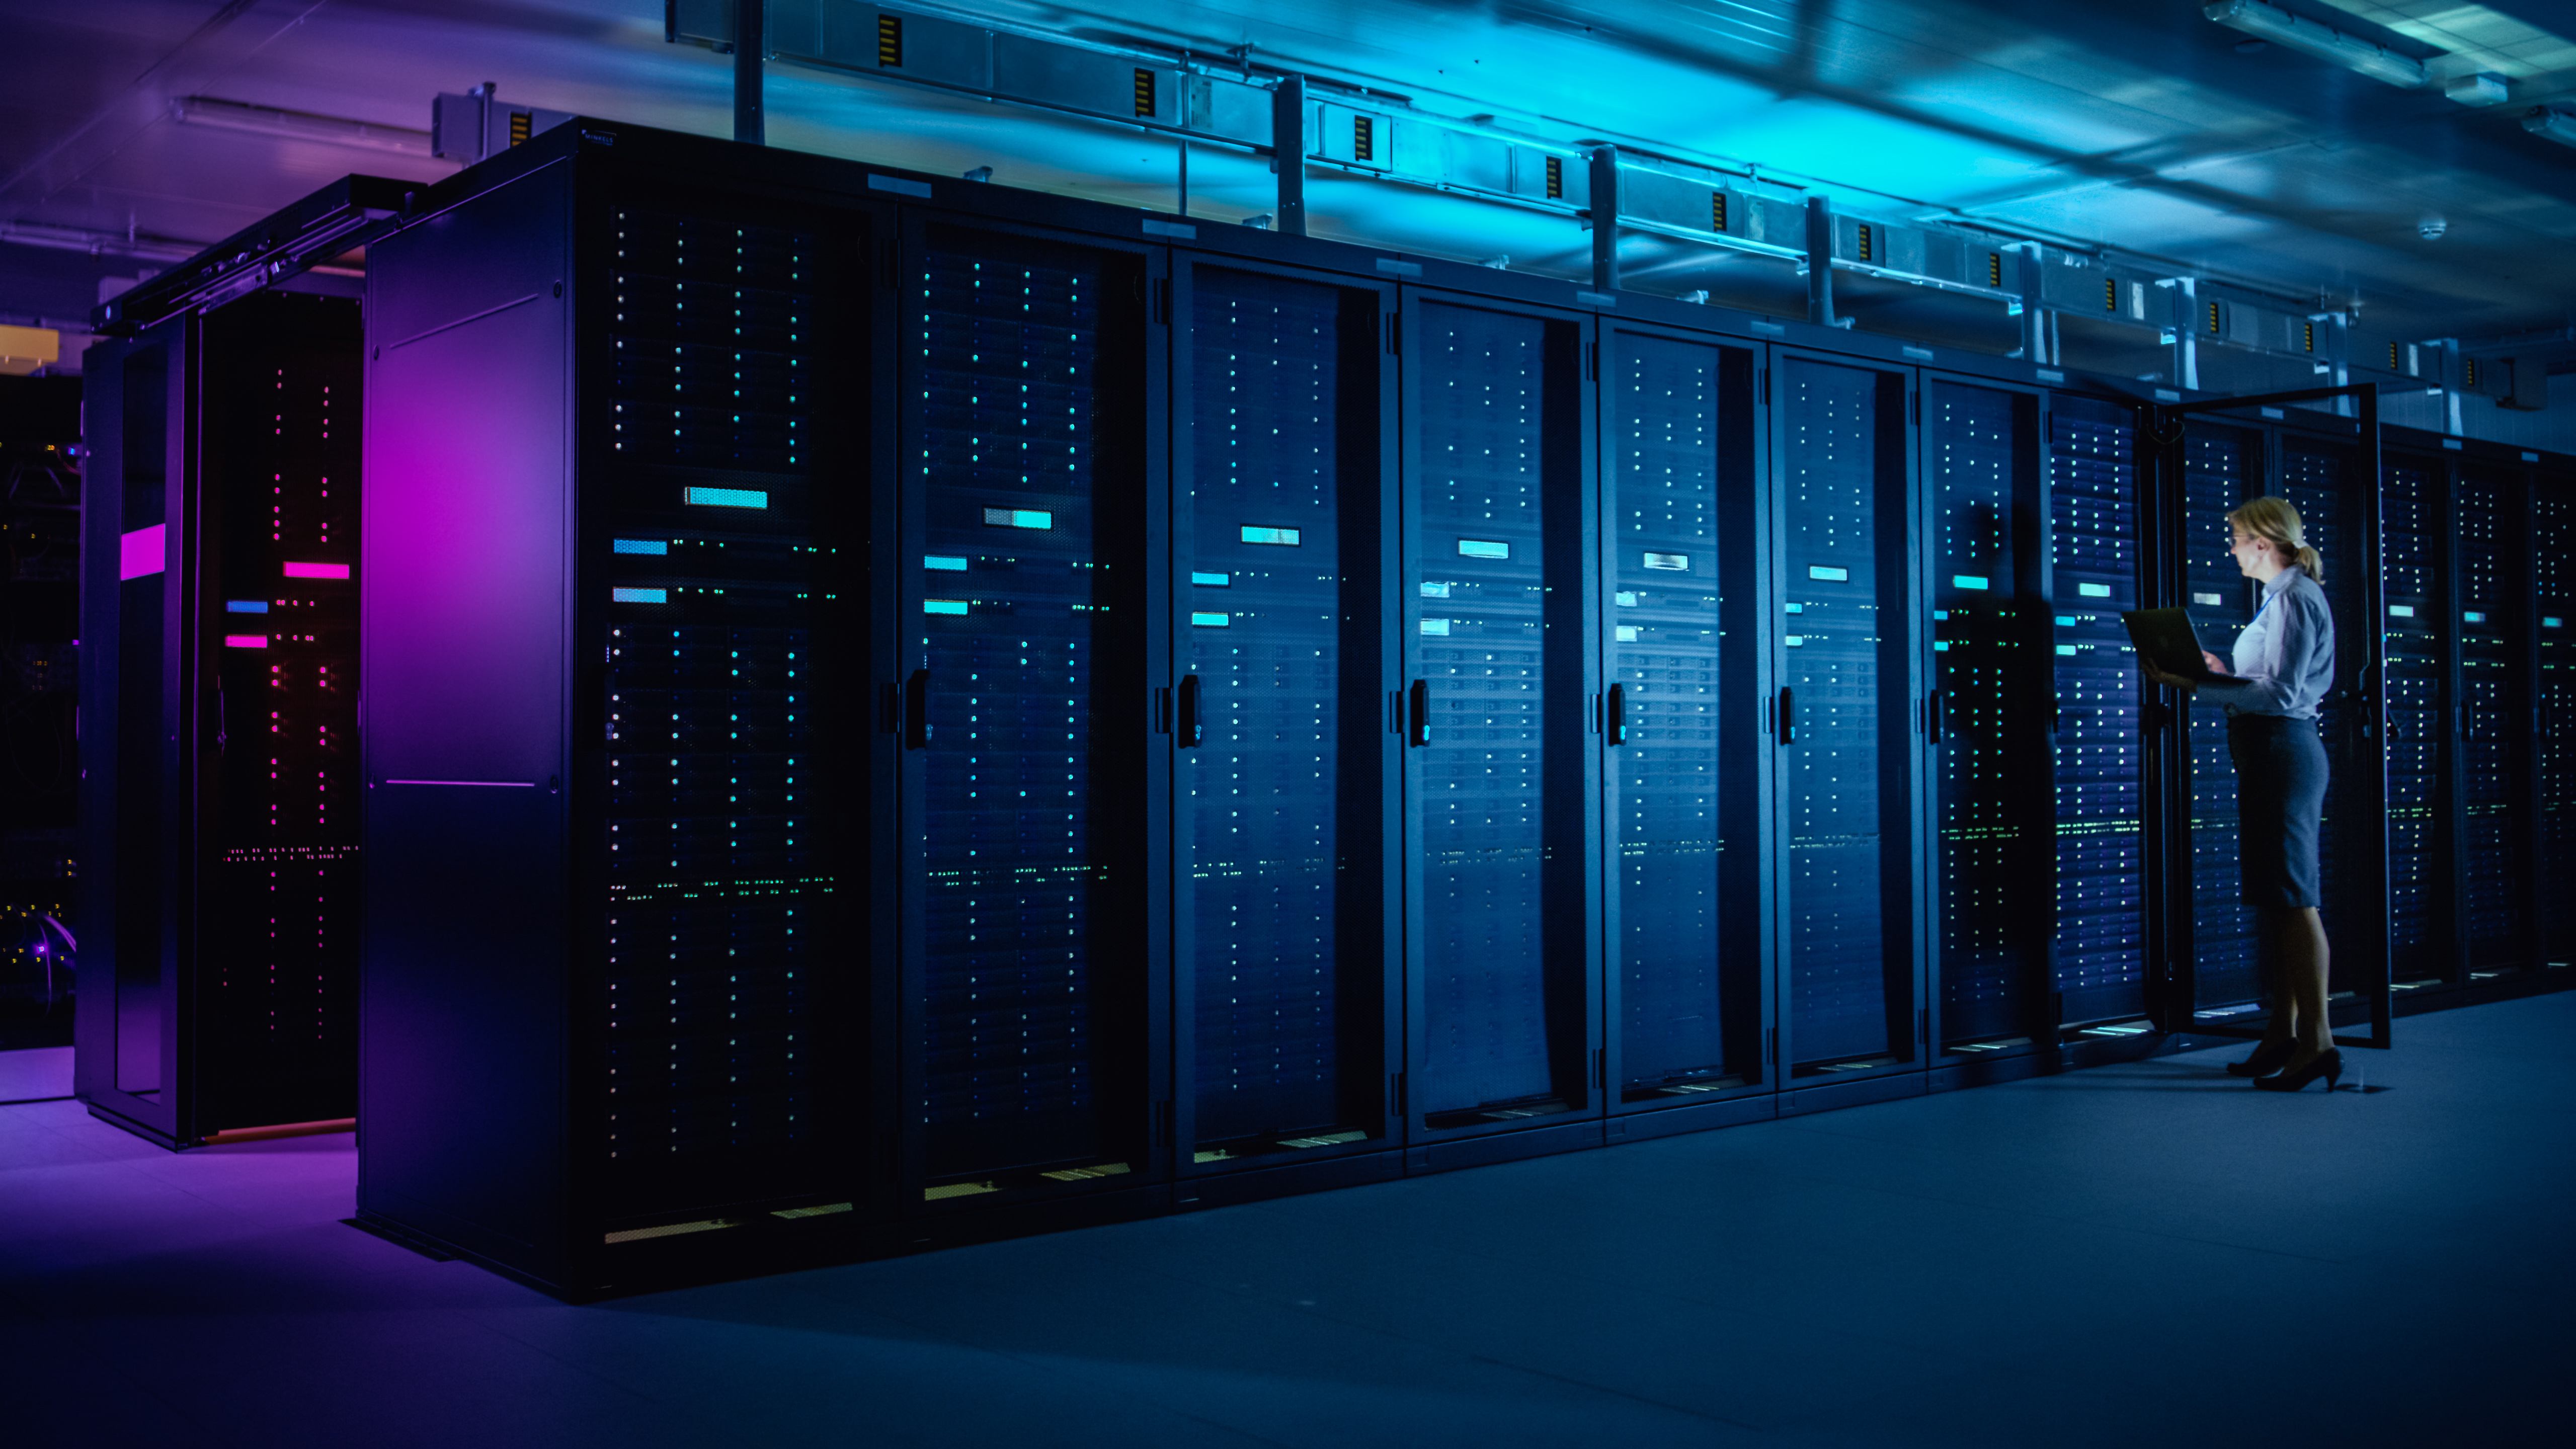 The role of controls in Data Centers